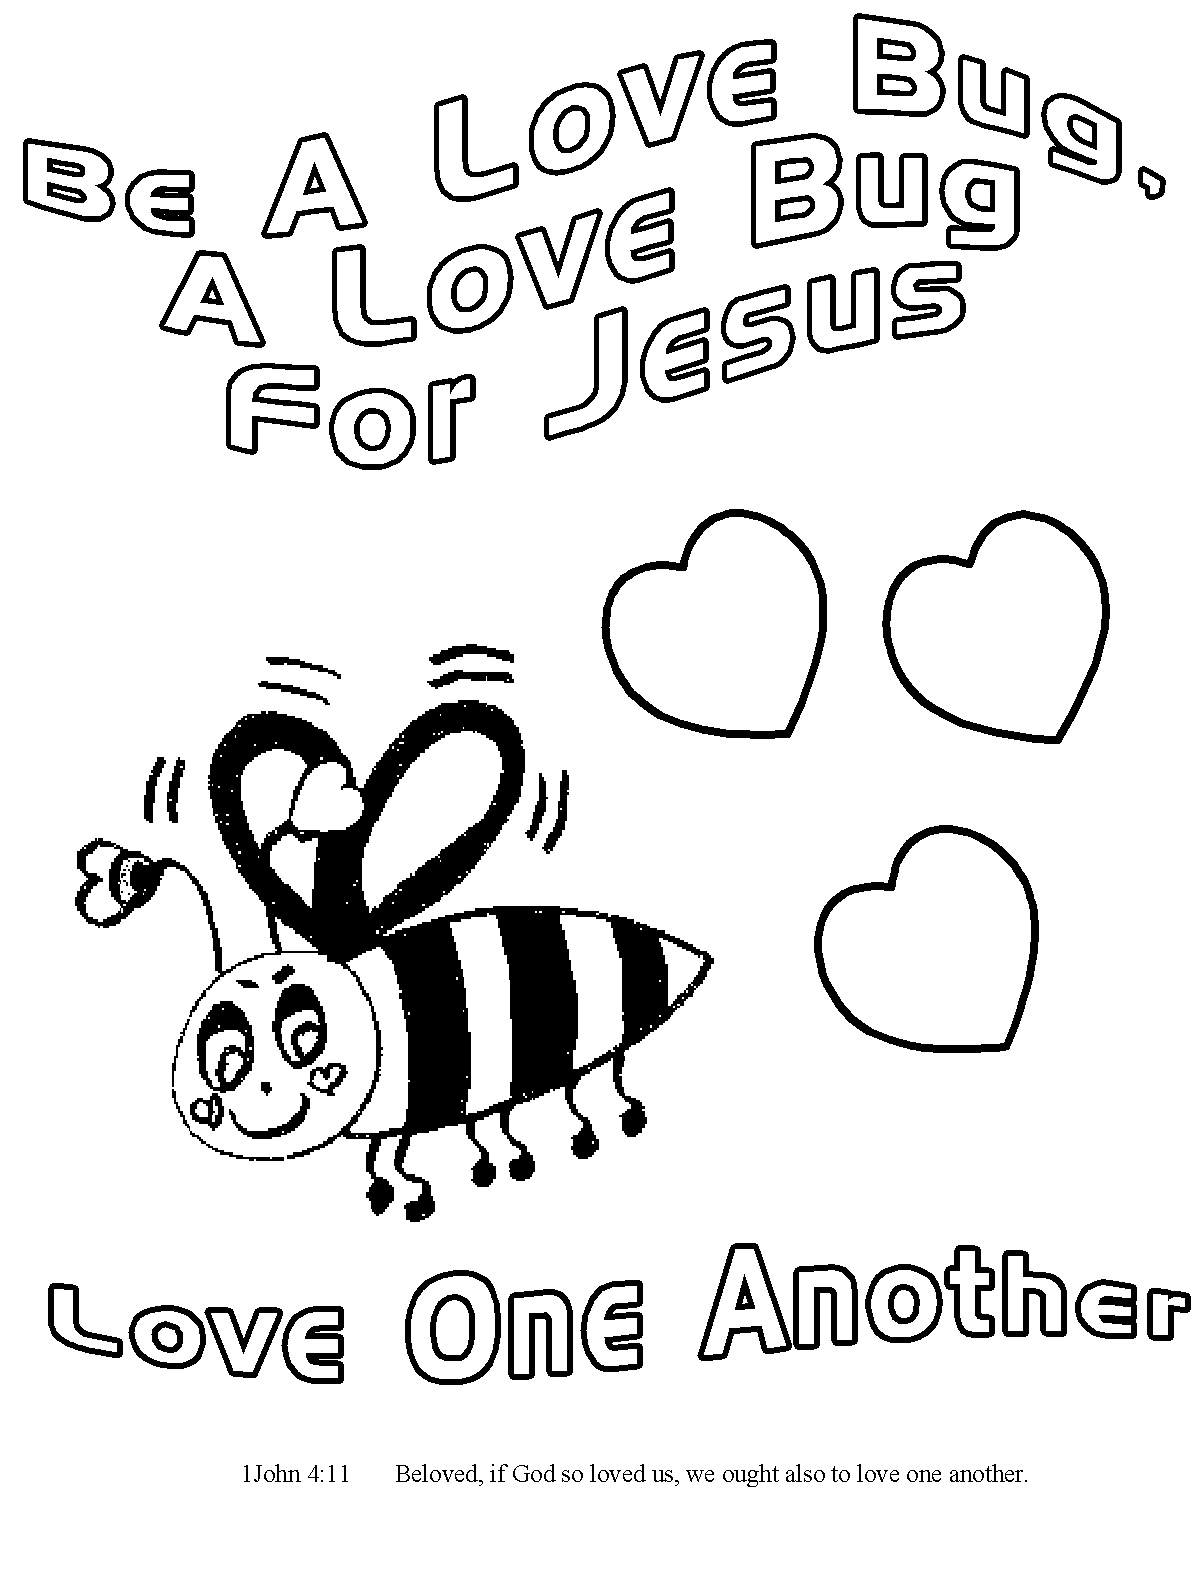 Childrens Gems In My Treasure Box Love Bug For Jesus Coloring Pages